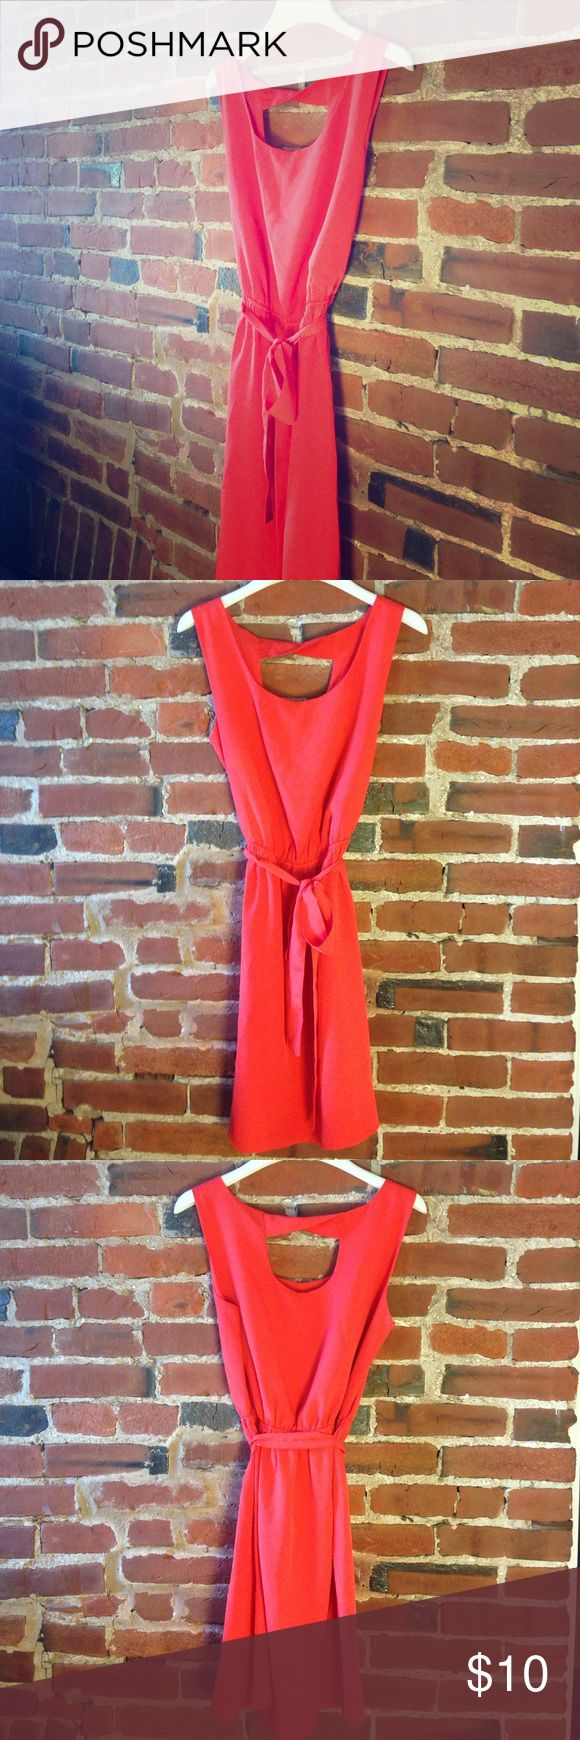 Drawn tie blood red Blood Orange ideas dress 25+